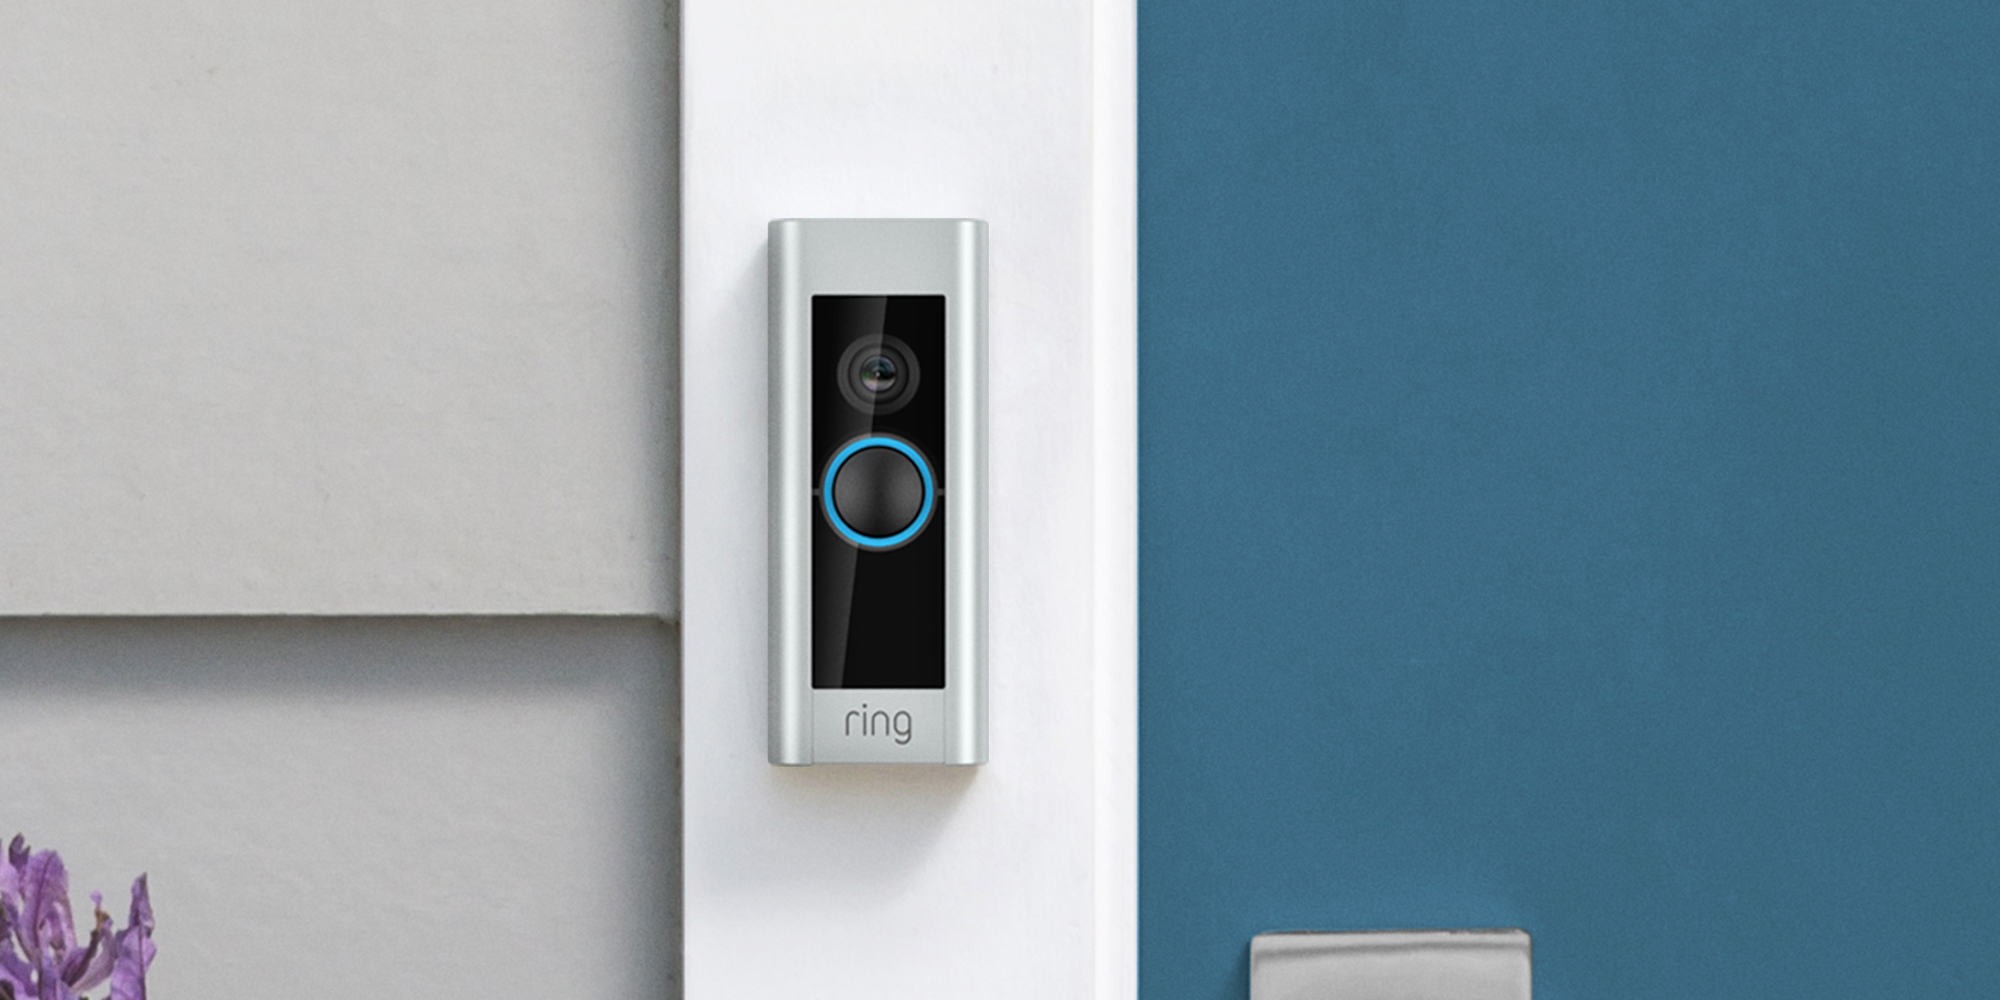 Bring home the Ring Video Doorbell Pro for its lowest price in months at $189 shipped (Reg. $249)